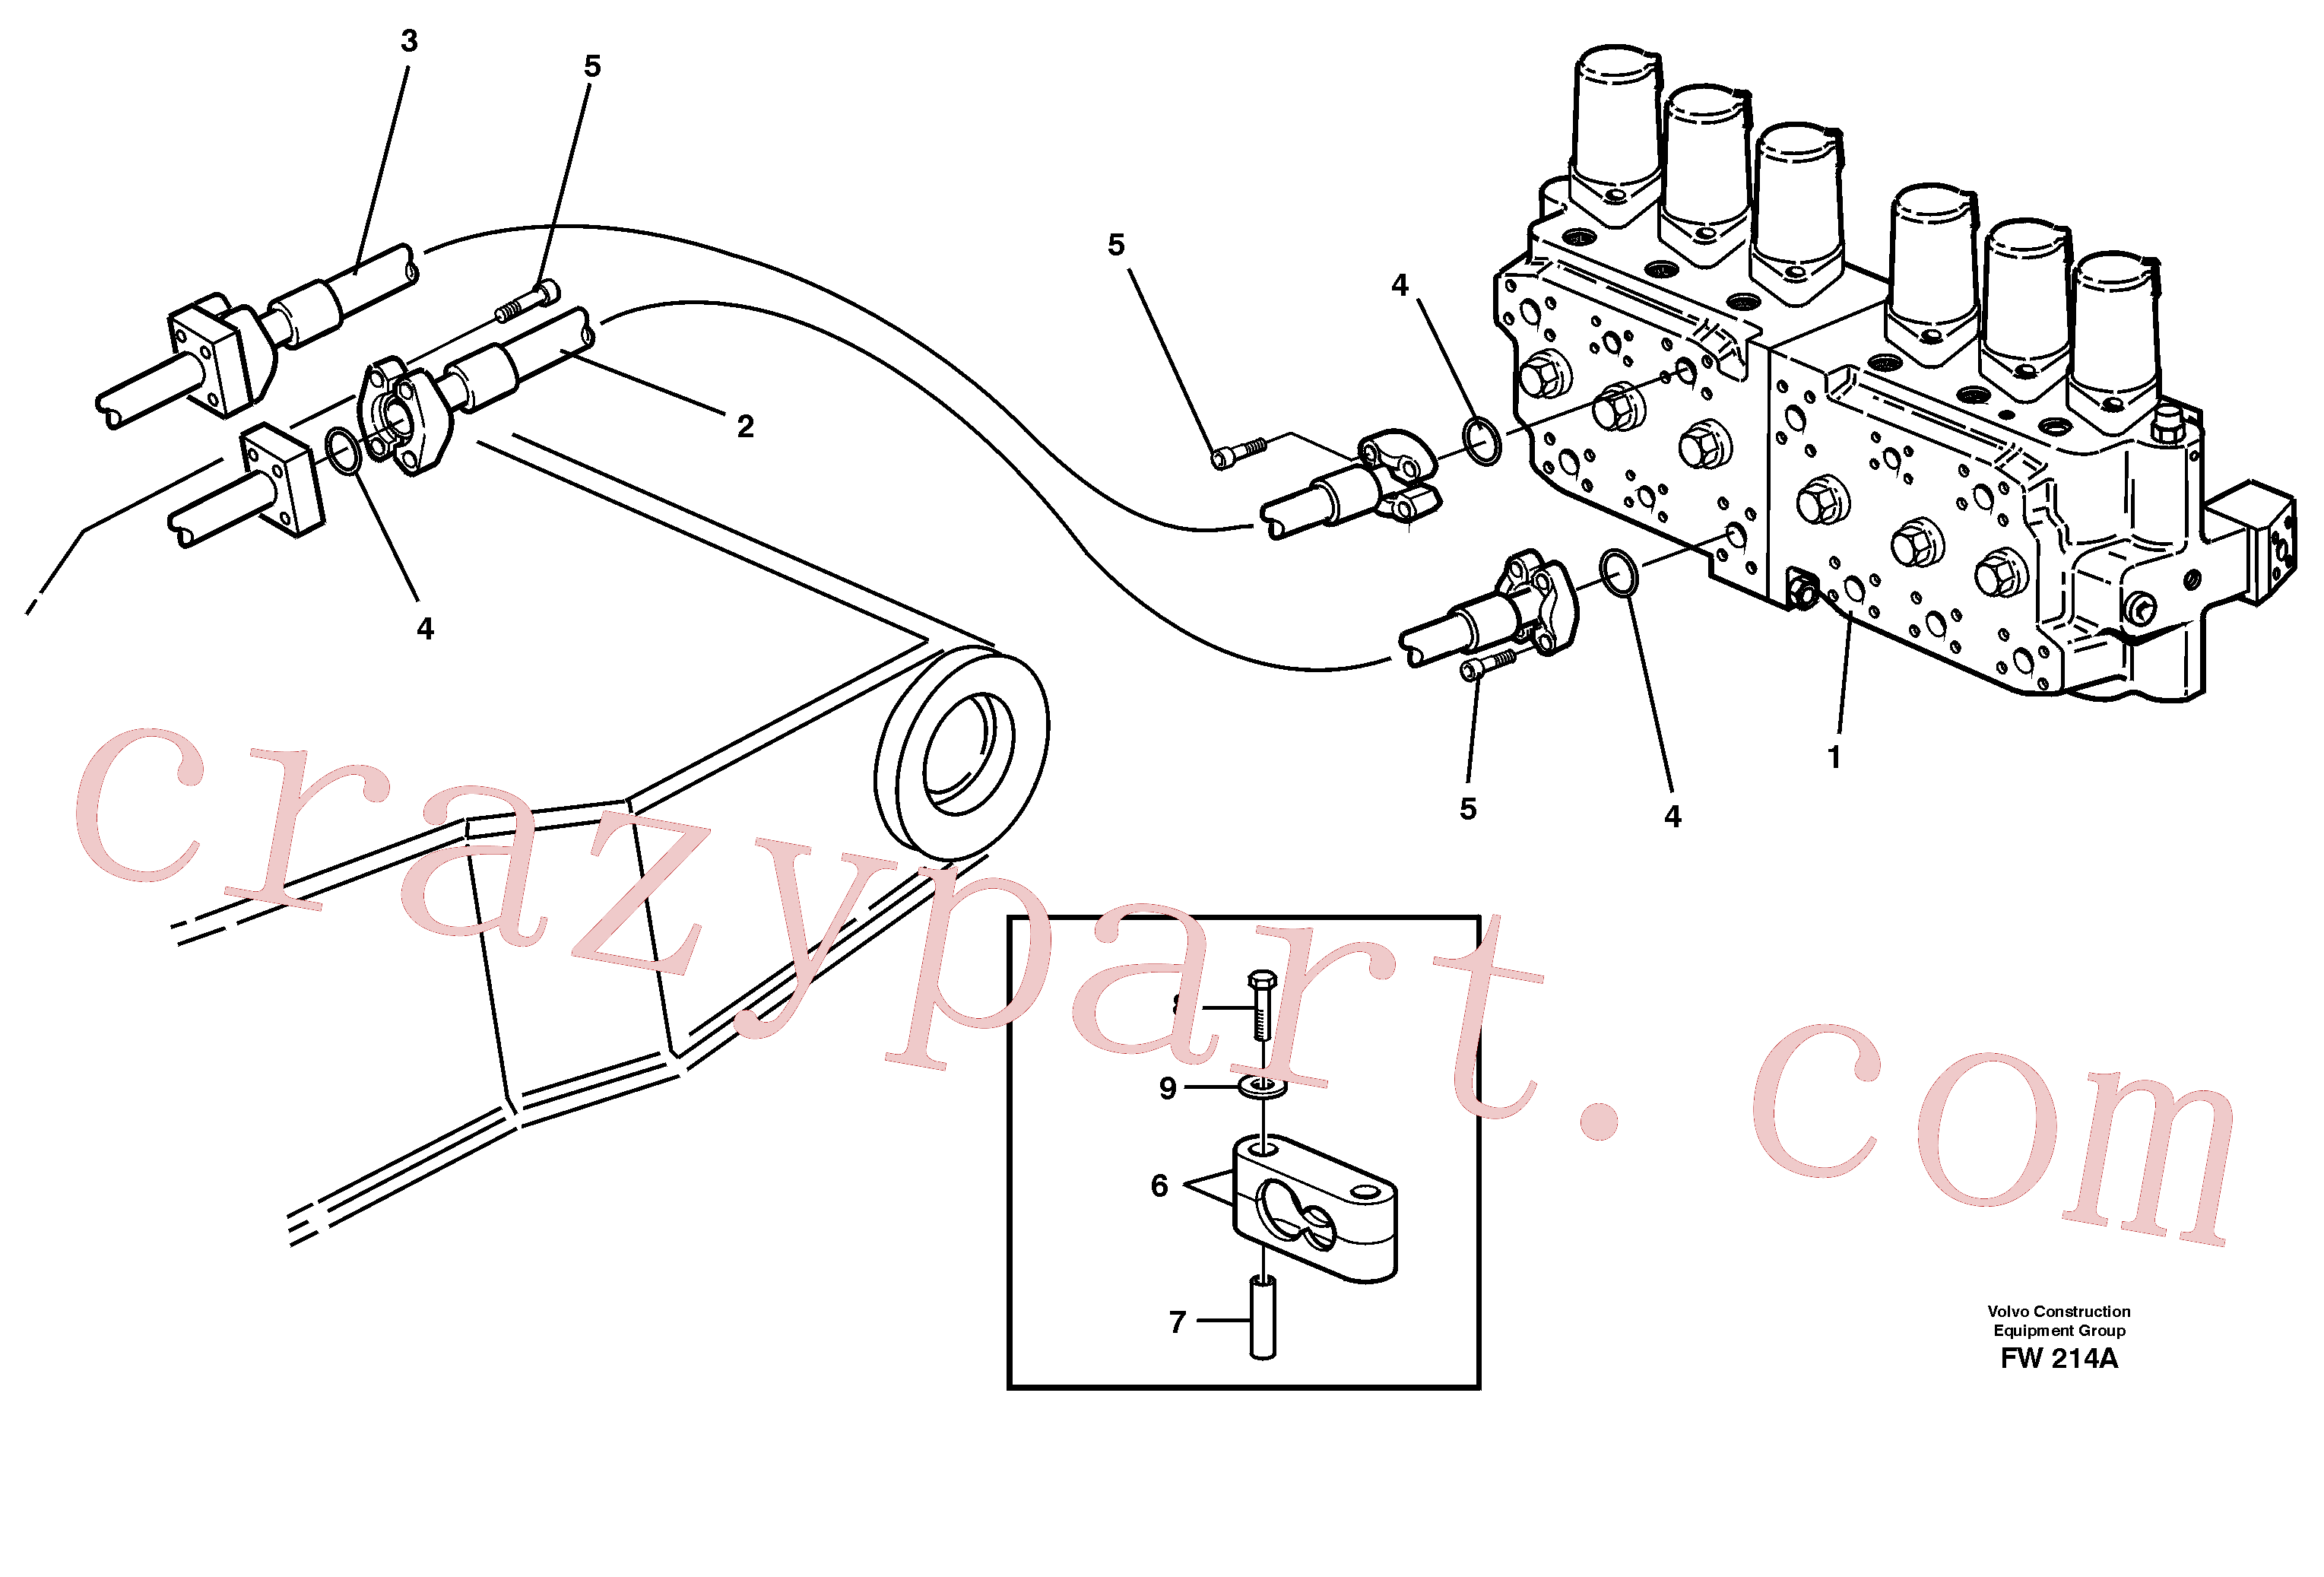 VOE14345006 for Volvo Hydraulic system, dipperarm(FW214A assembly)